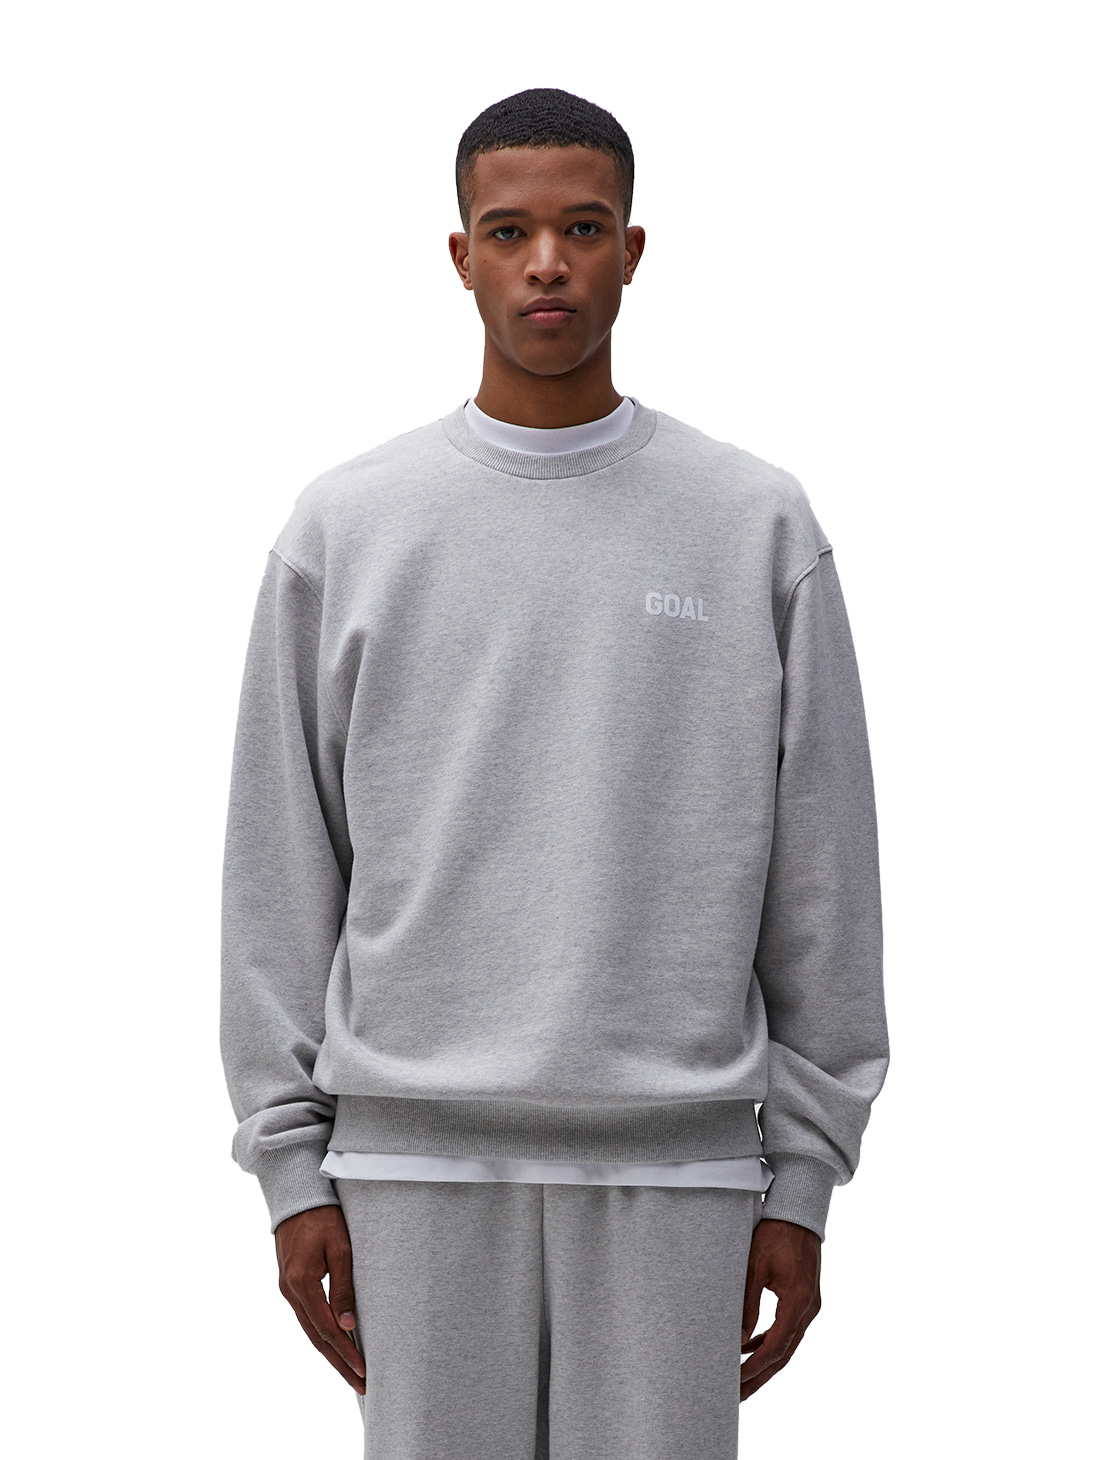 GOALSTUDIO FLOCKING SWEATSHIRT - GREY